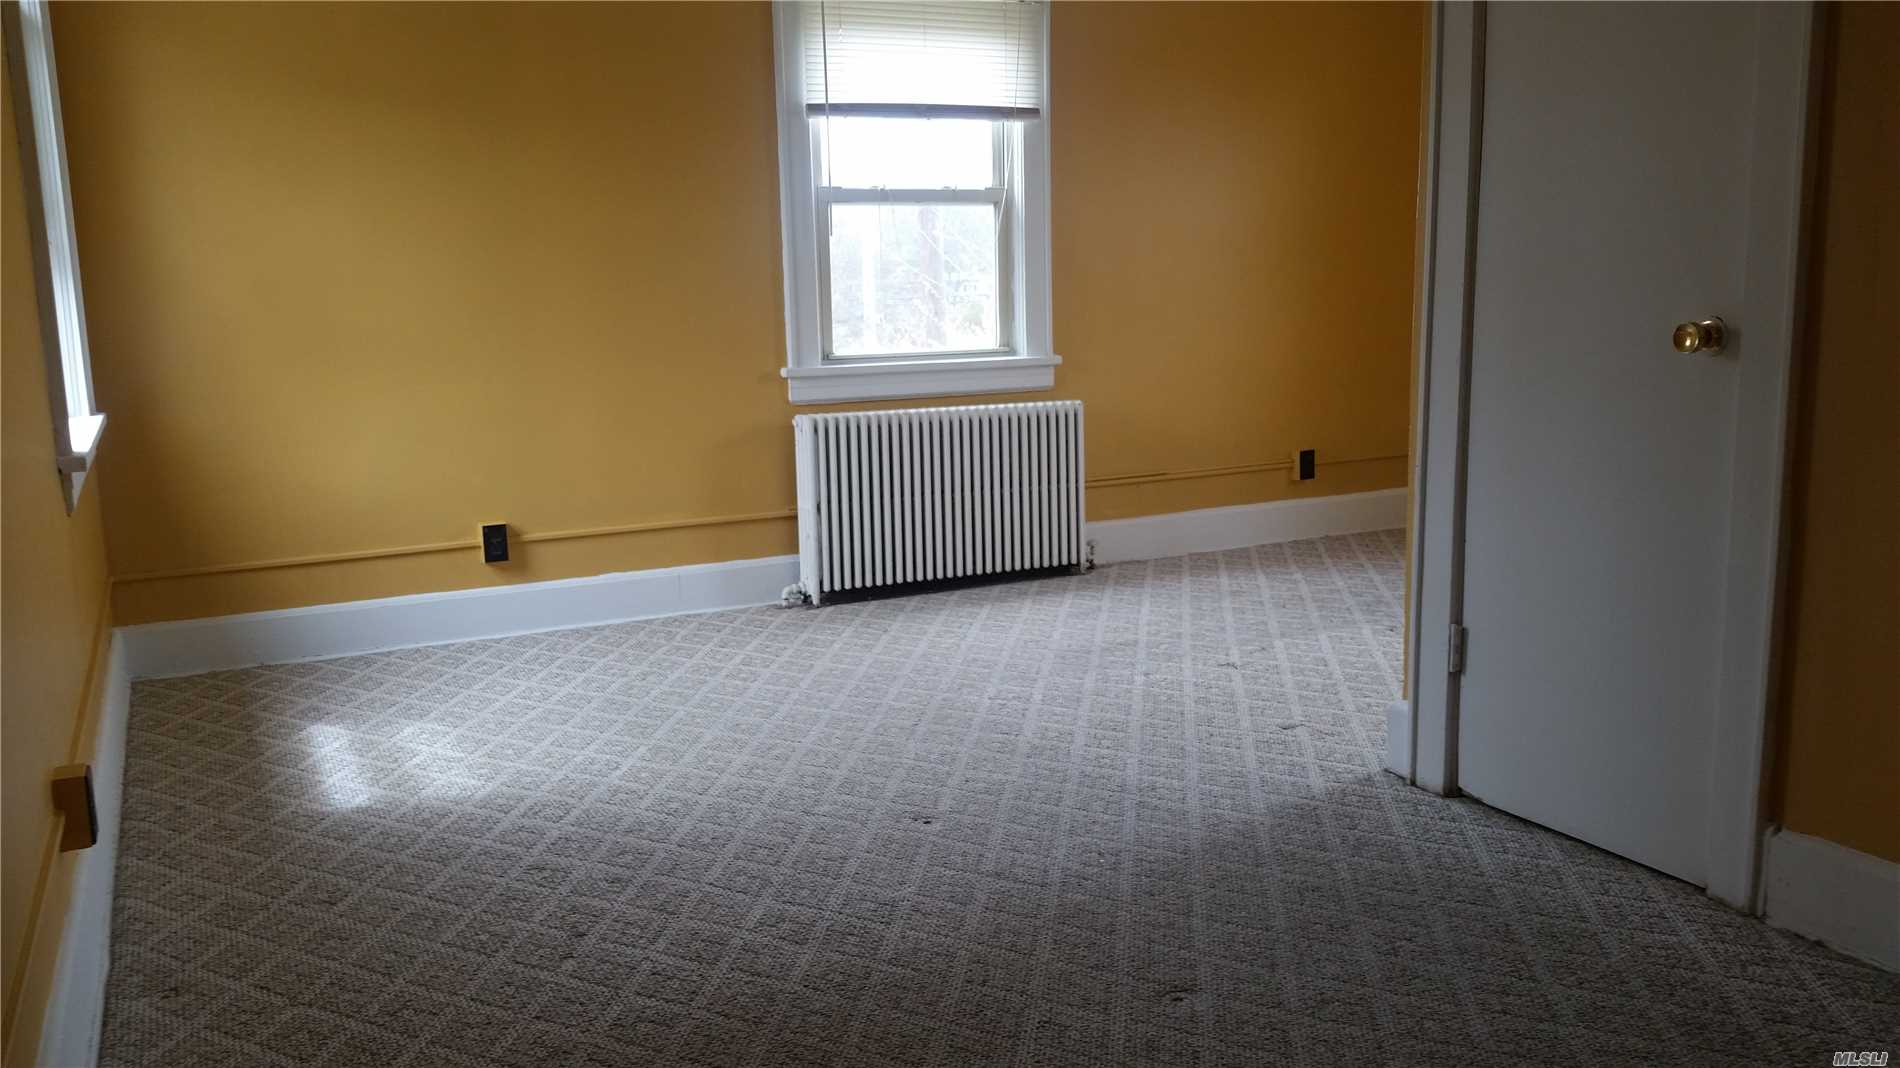 2nd floor apartment in 2-family. Lvrm, Kitchen, Bdrm and Bath. Close to shopping and food.